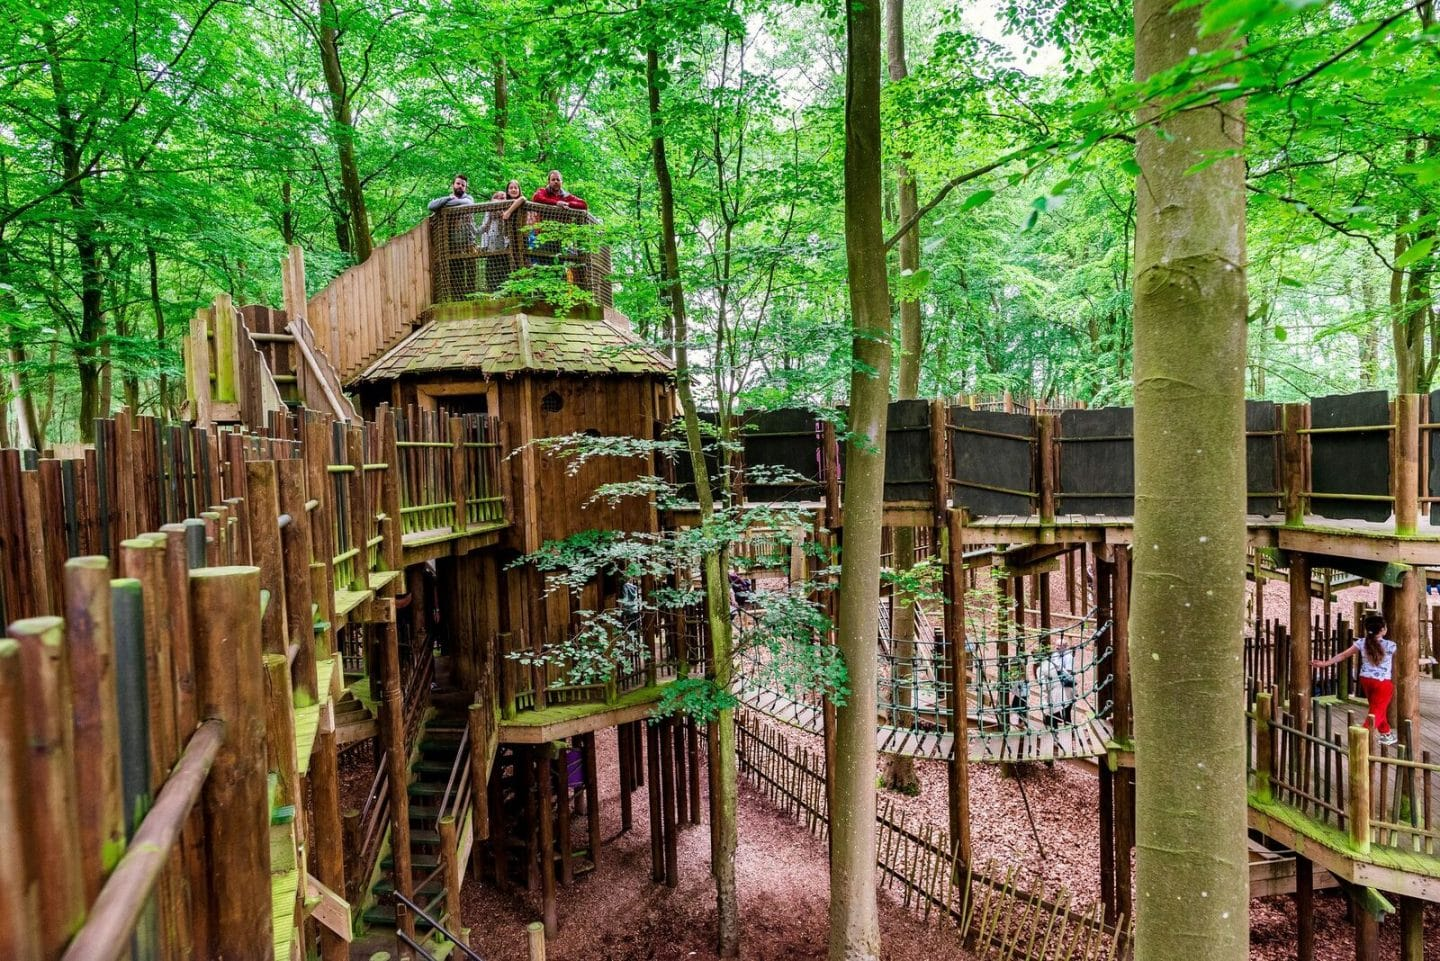 A photo of a wooden outdoor maze, one the BeWILDerwood attractions.